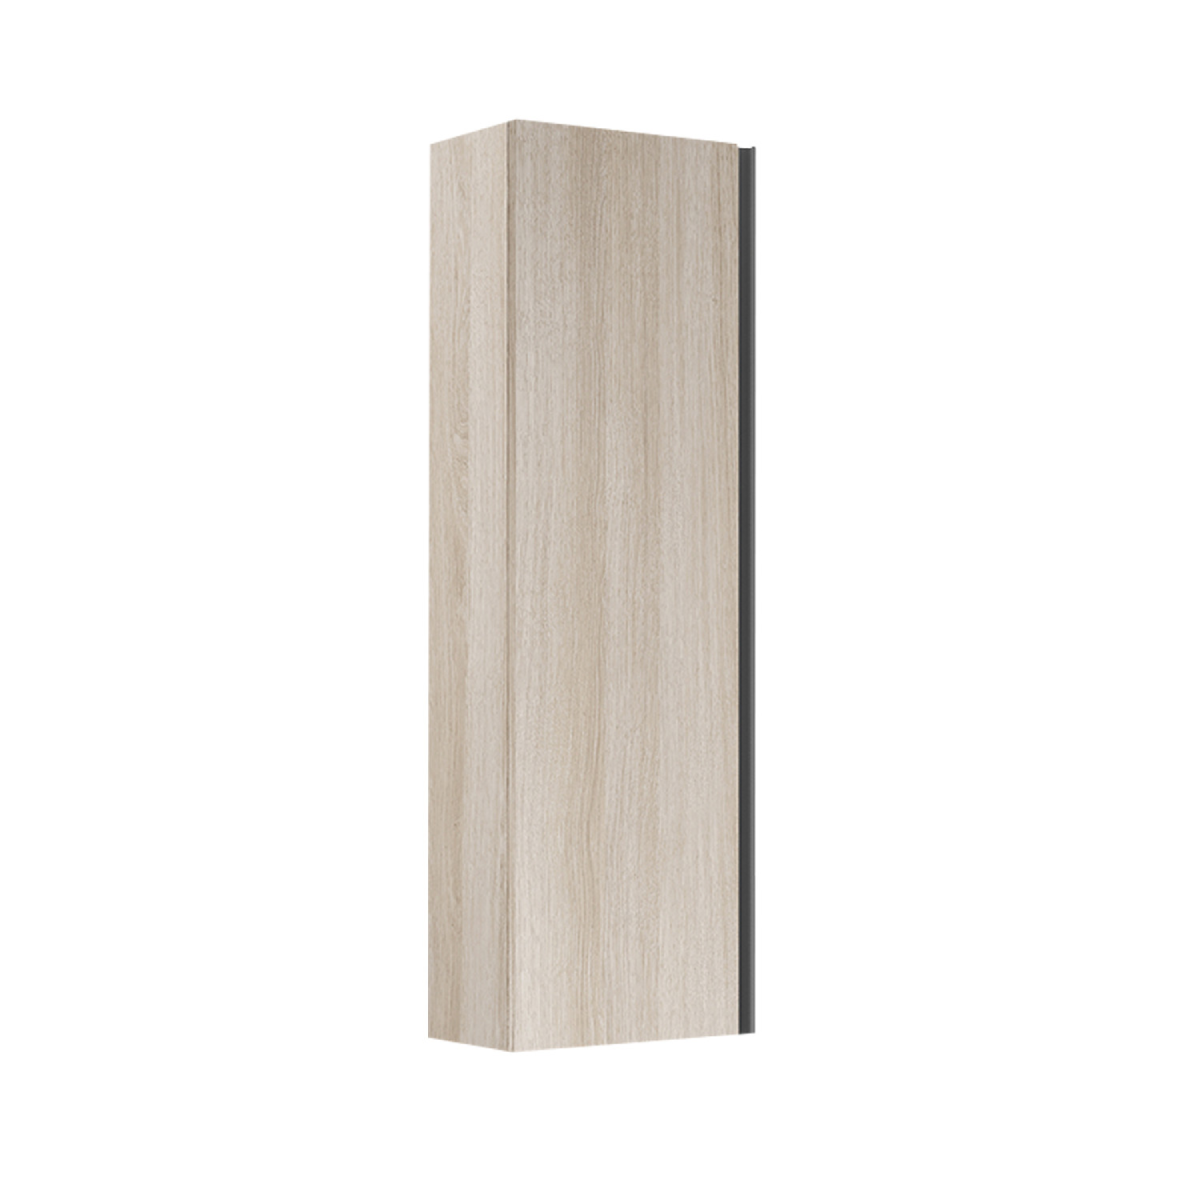 Frontline Mode Light Oak Tall Unit 345mm